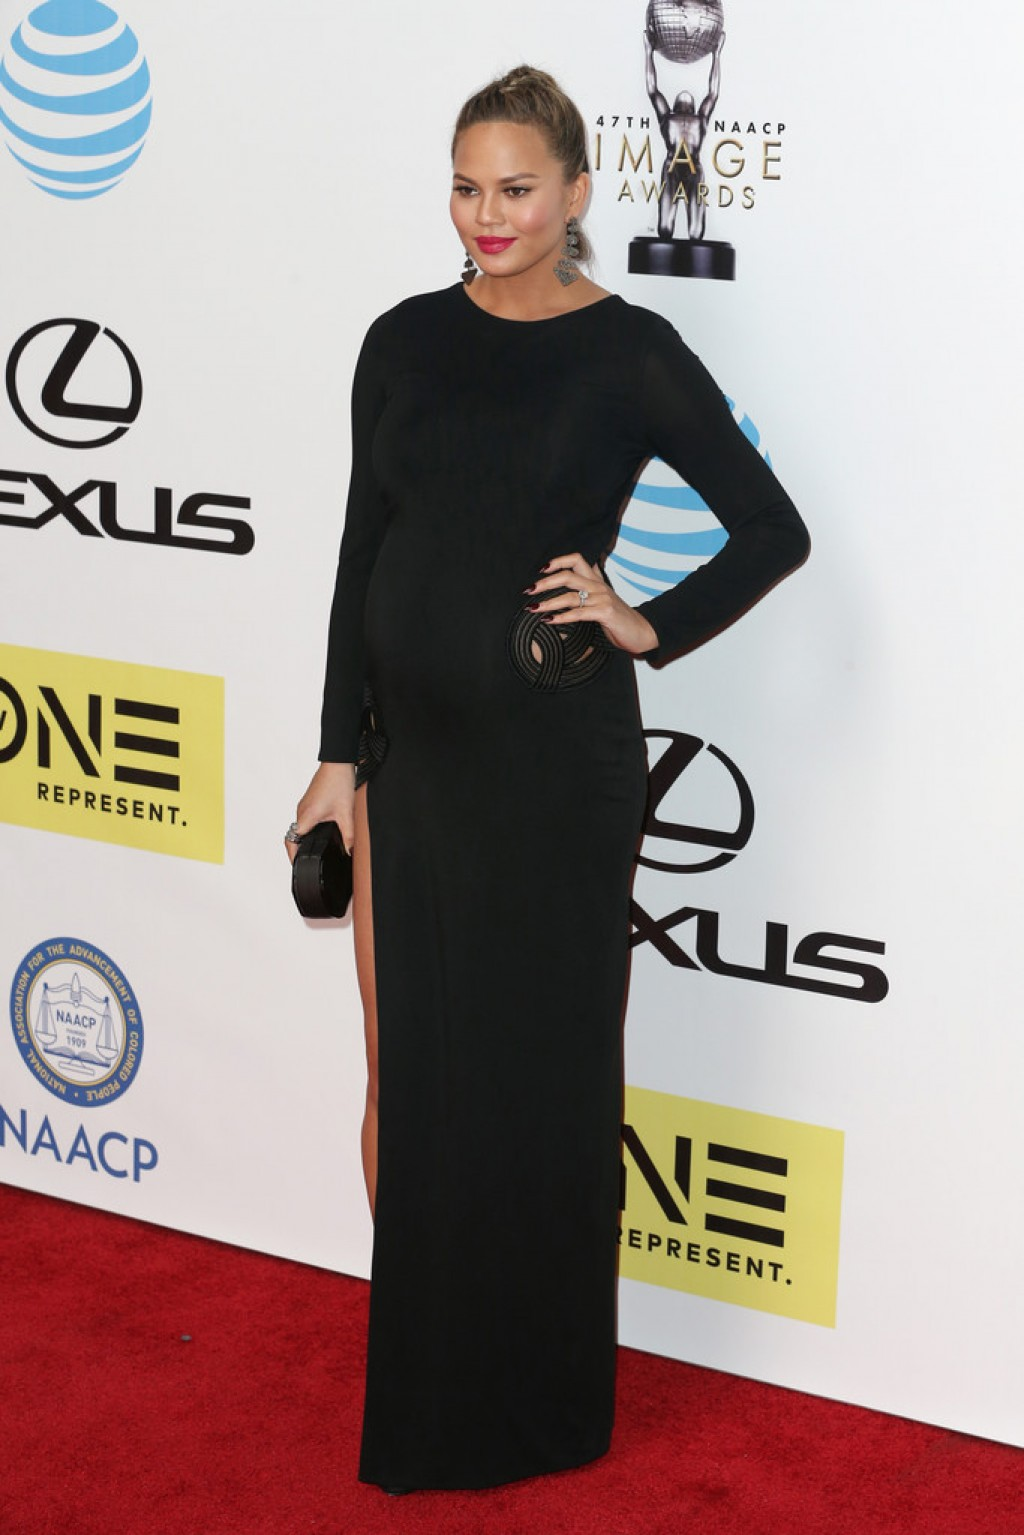 chrissy-teigen-2016-naacp-image-awards-haney-gown-1024x1535